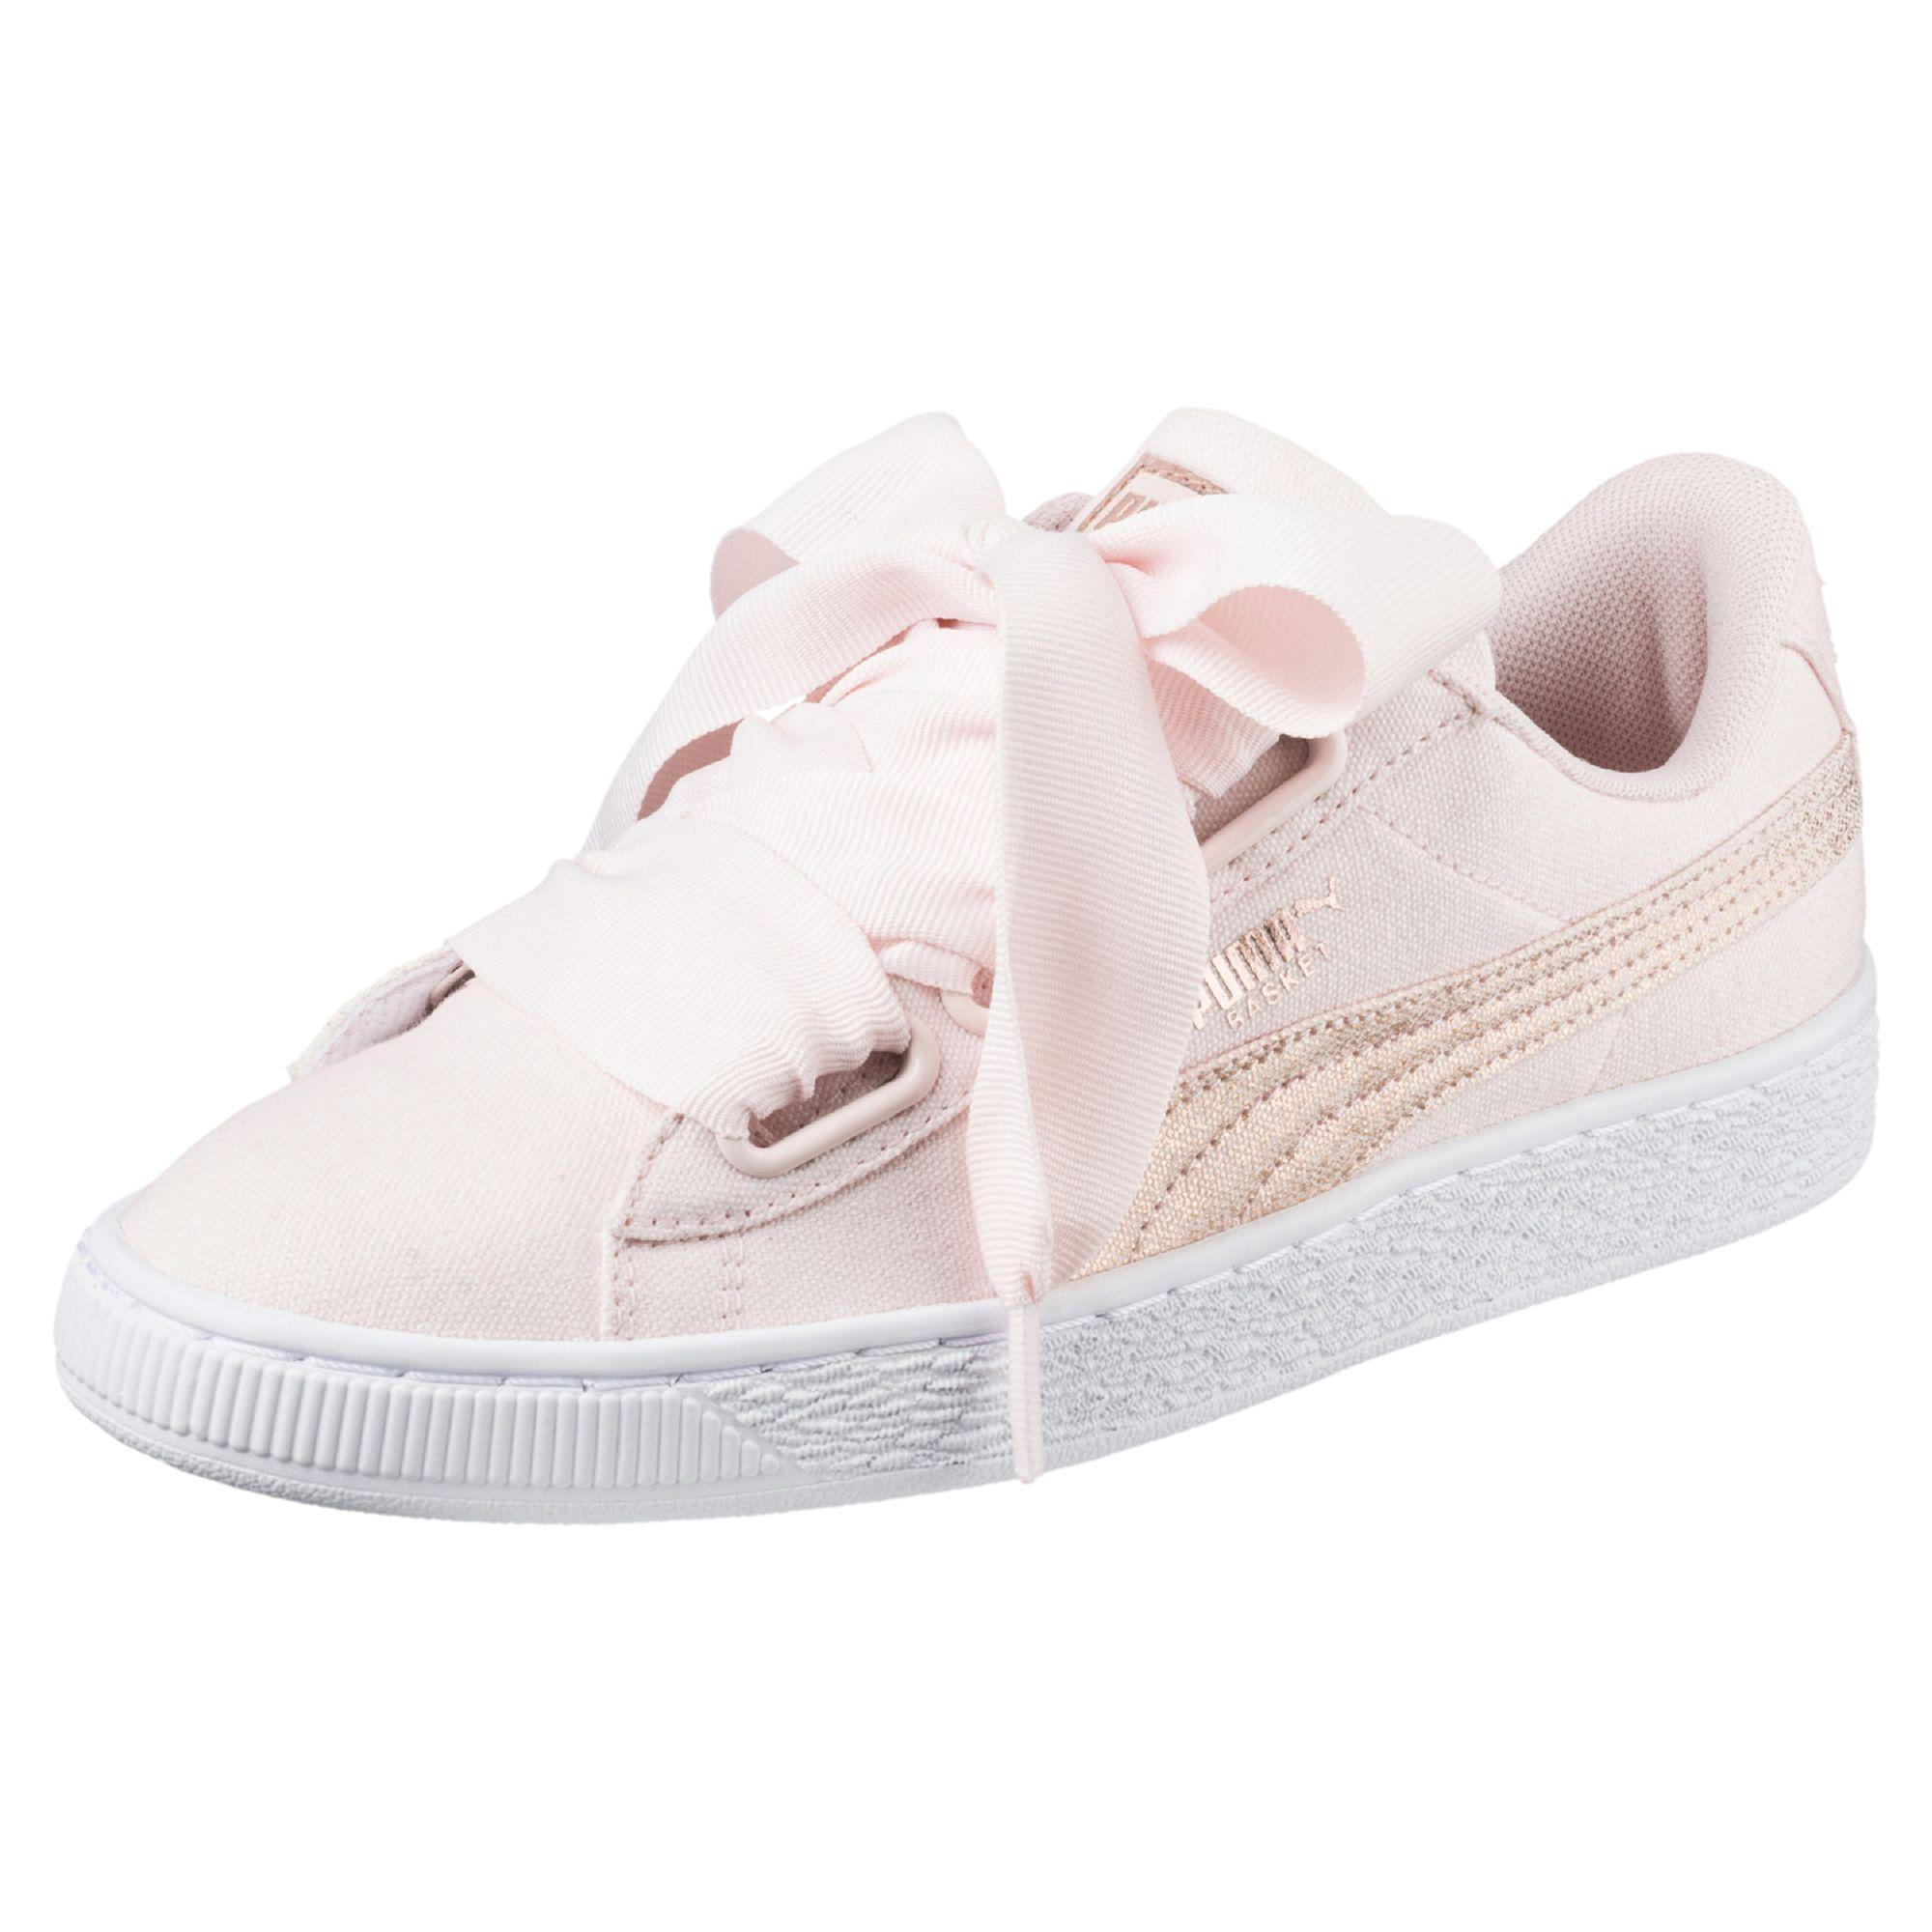 Marques Chaussure femme Puma femme Basket Heart Canvas Wn's Pearl-Puma White-Rose Gold